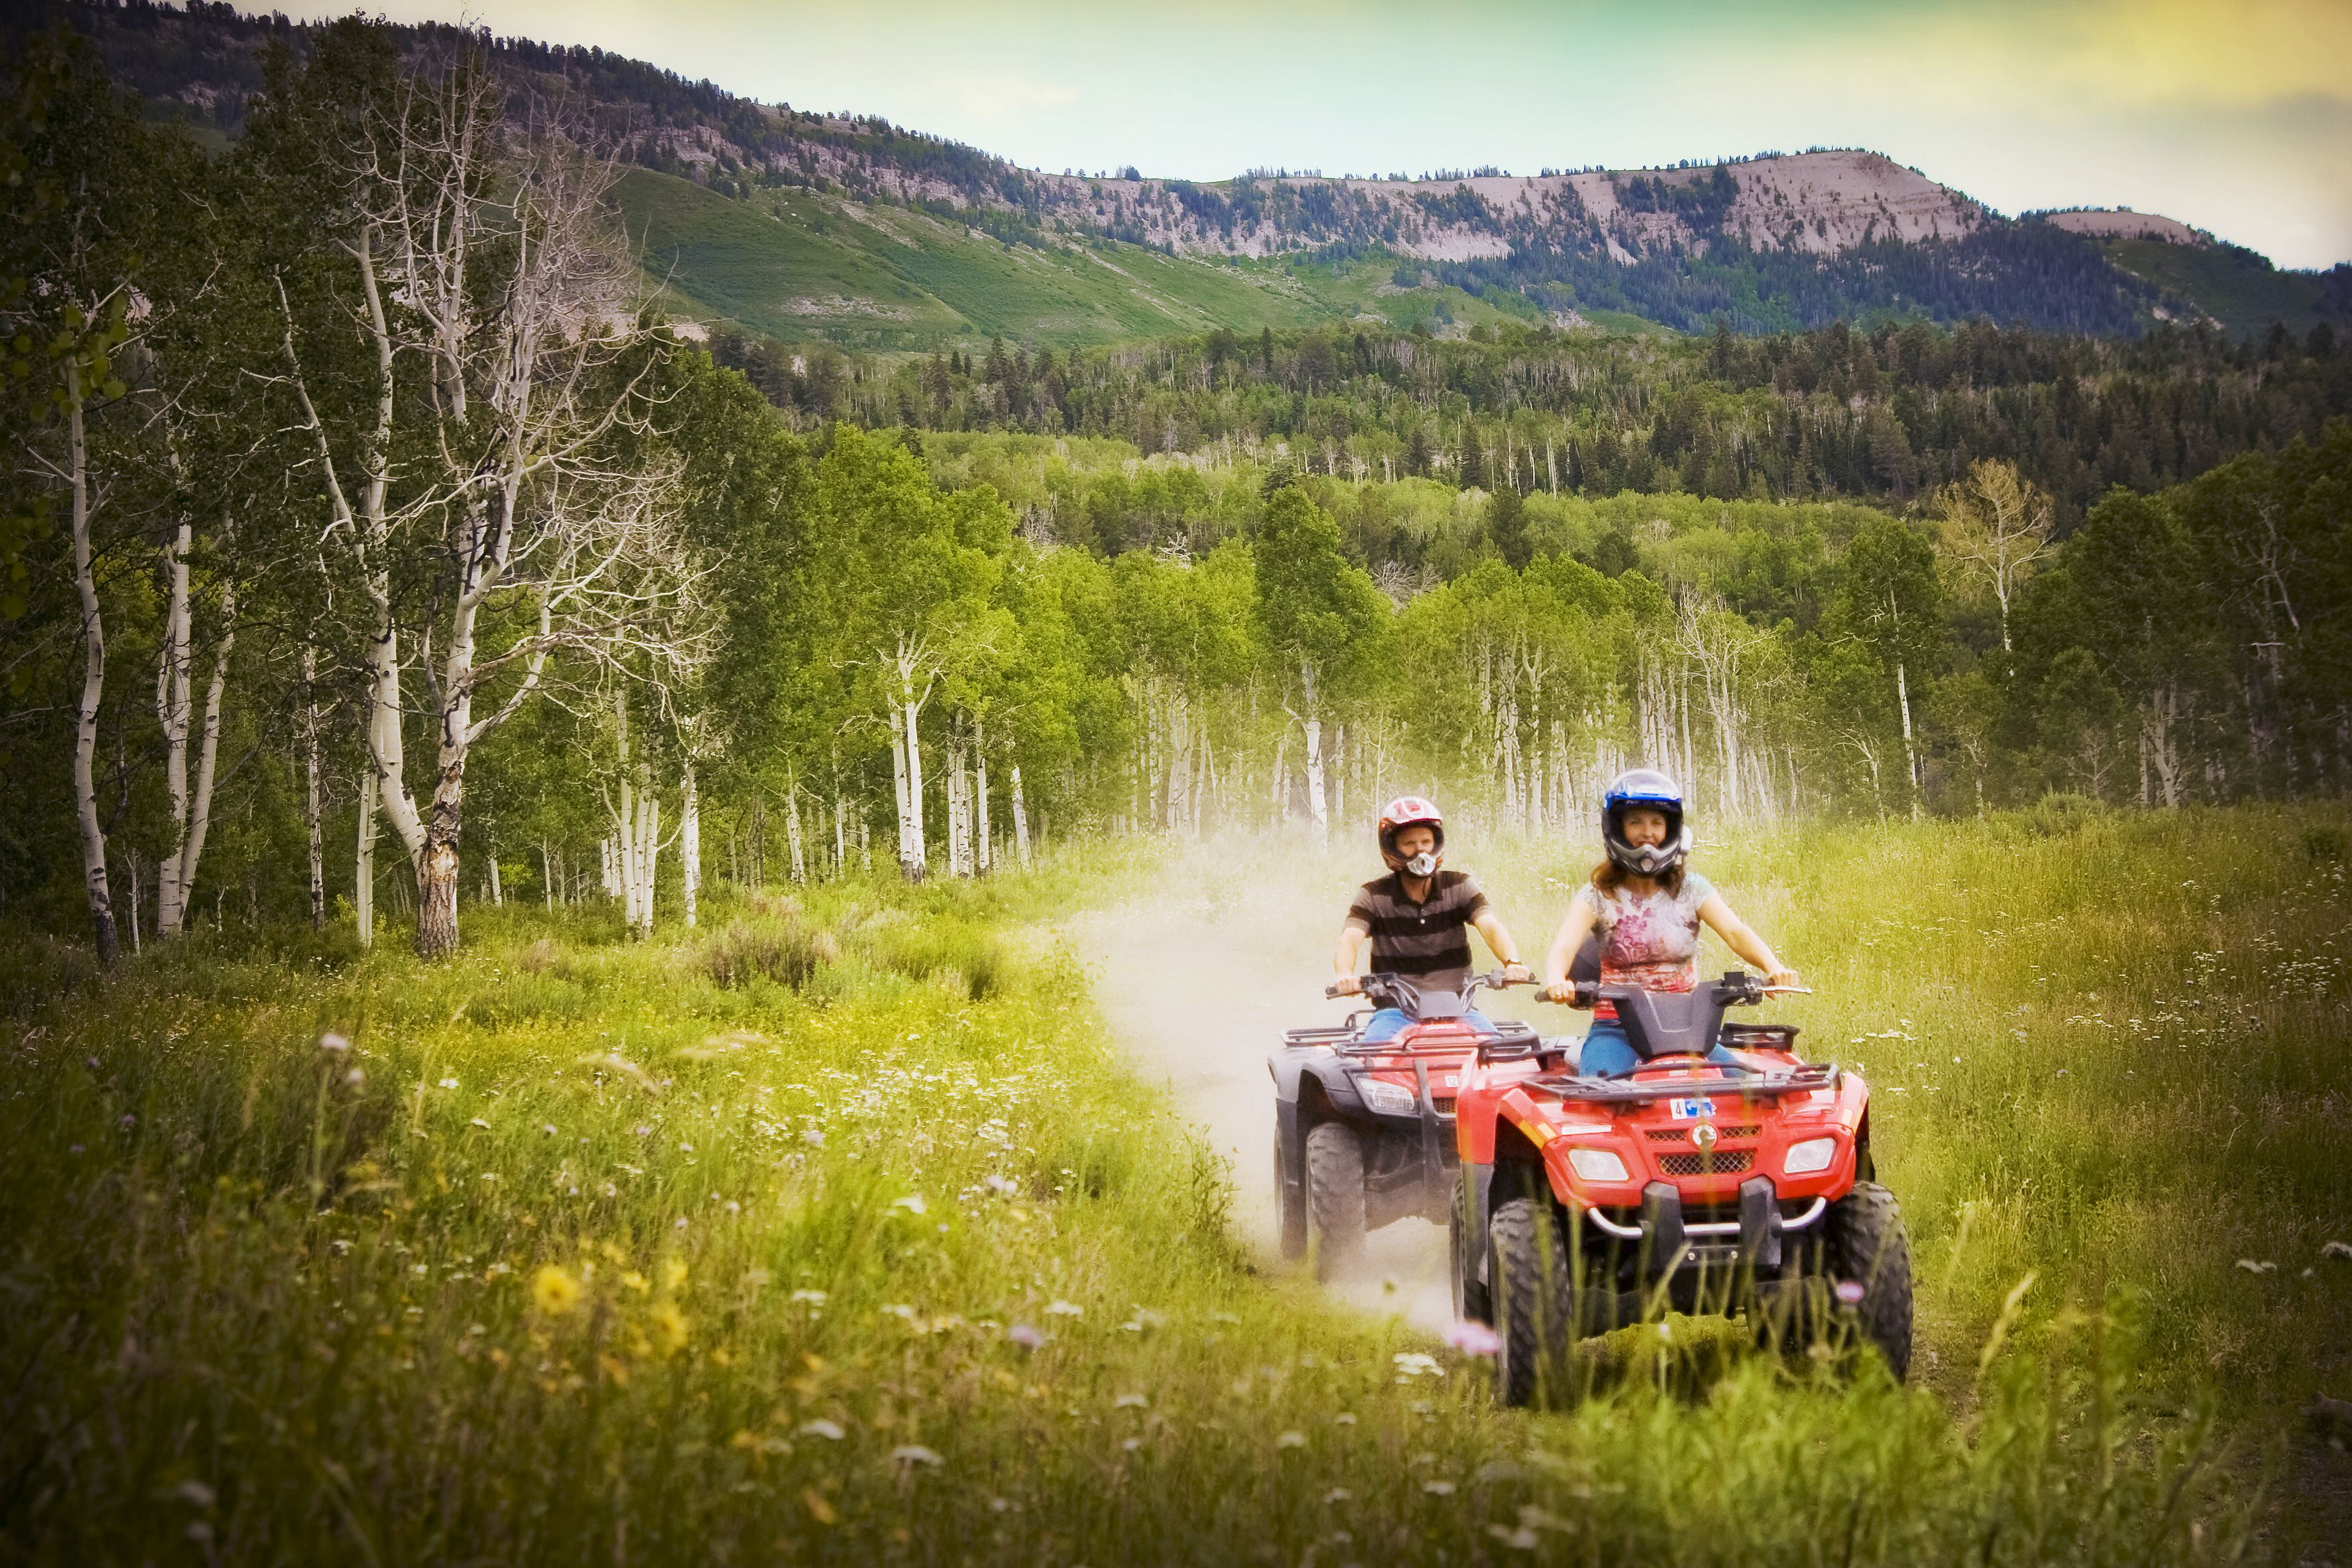 Offroading in utah ohv and atv trails rules and